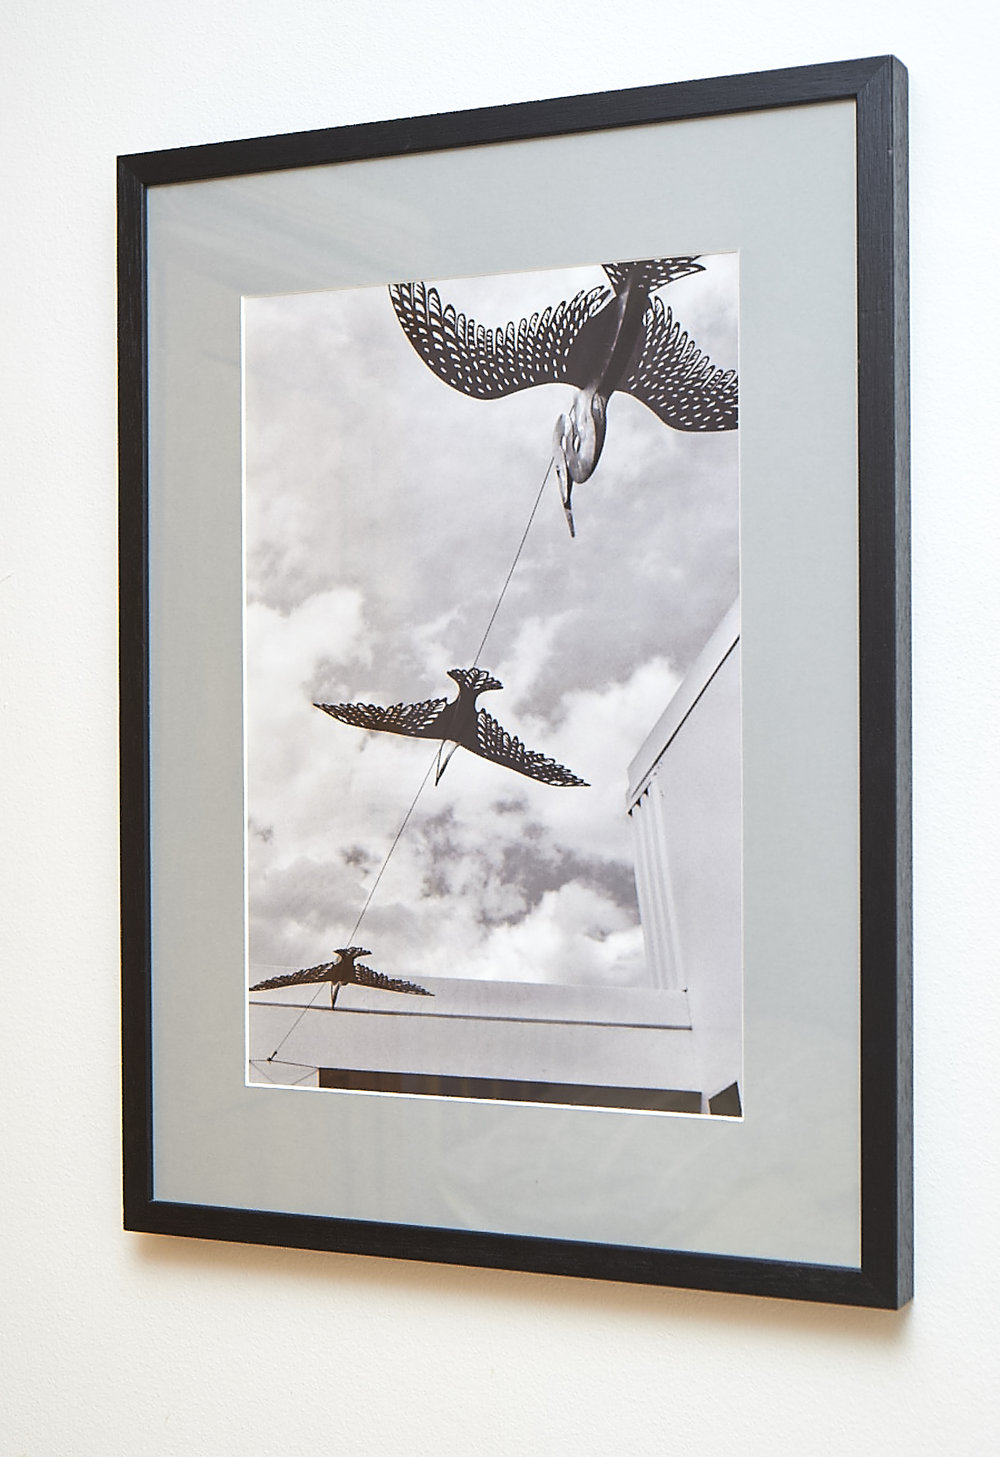 "Flight of Fancy Another image from Napier.  Shot on black & white film, and framed in a black frame with grey border.  Frame Size approx. 25 x 18.5""  COST £40.00"